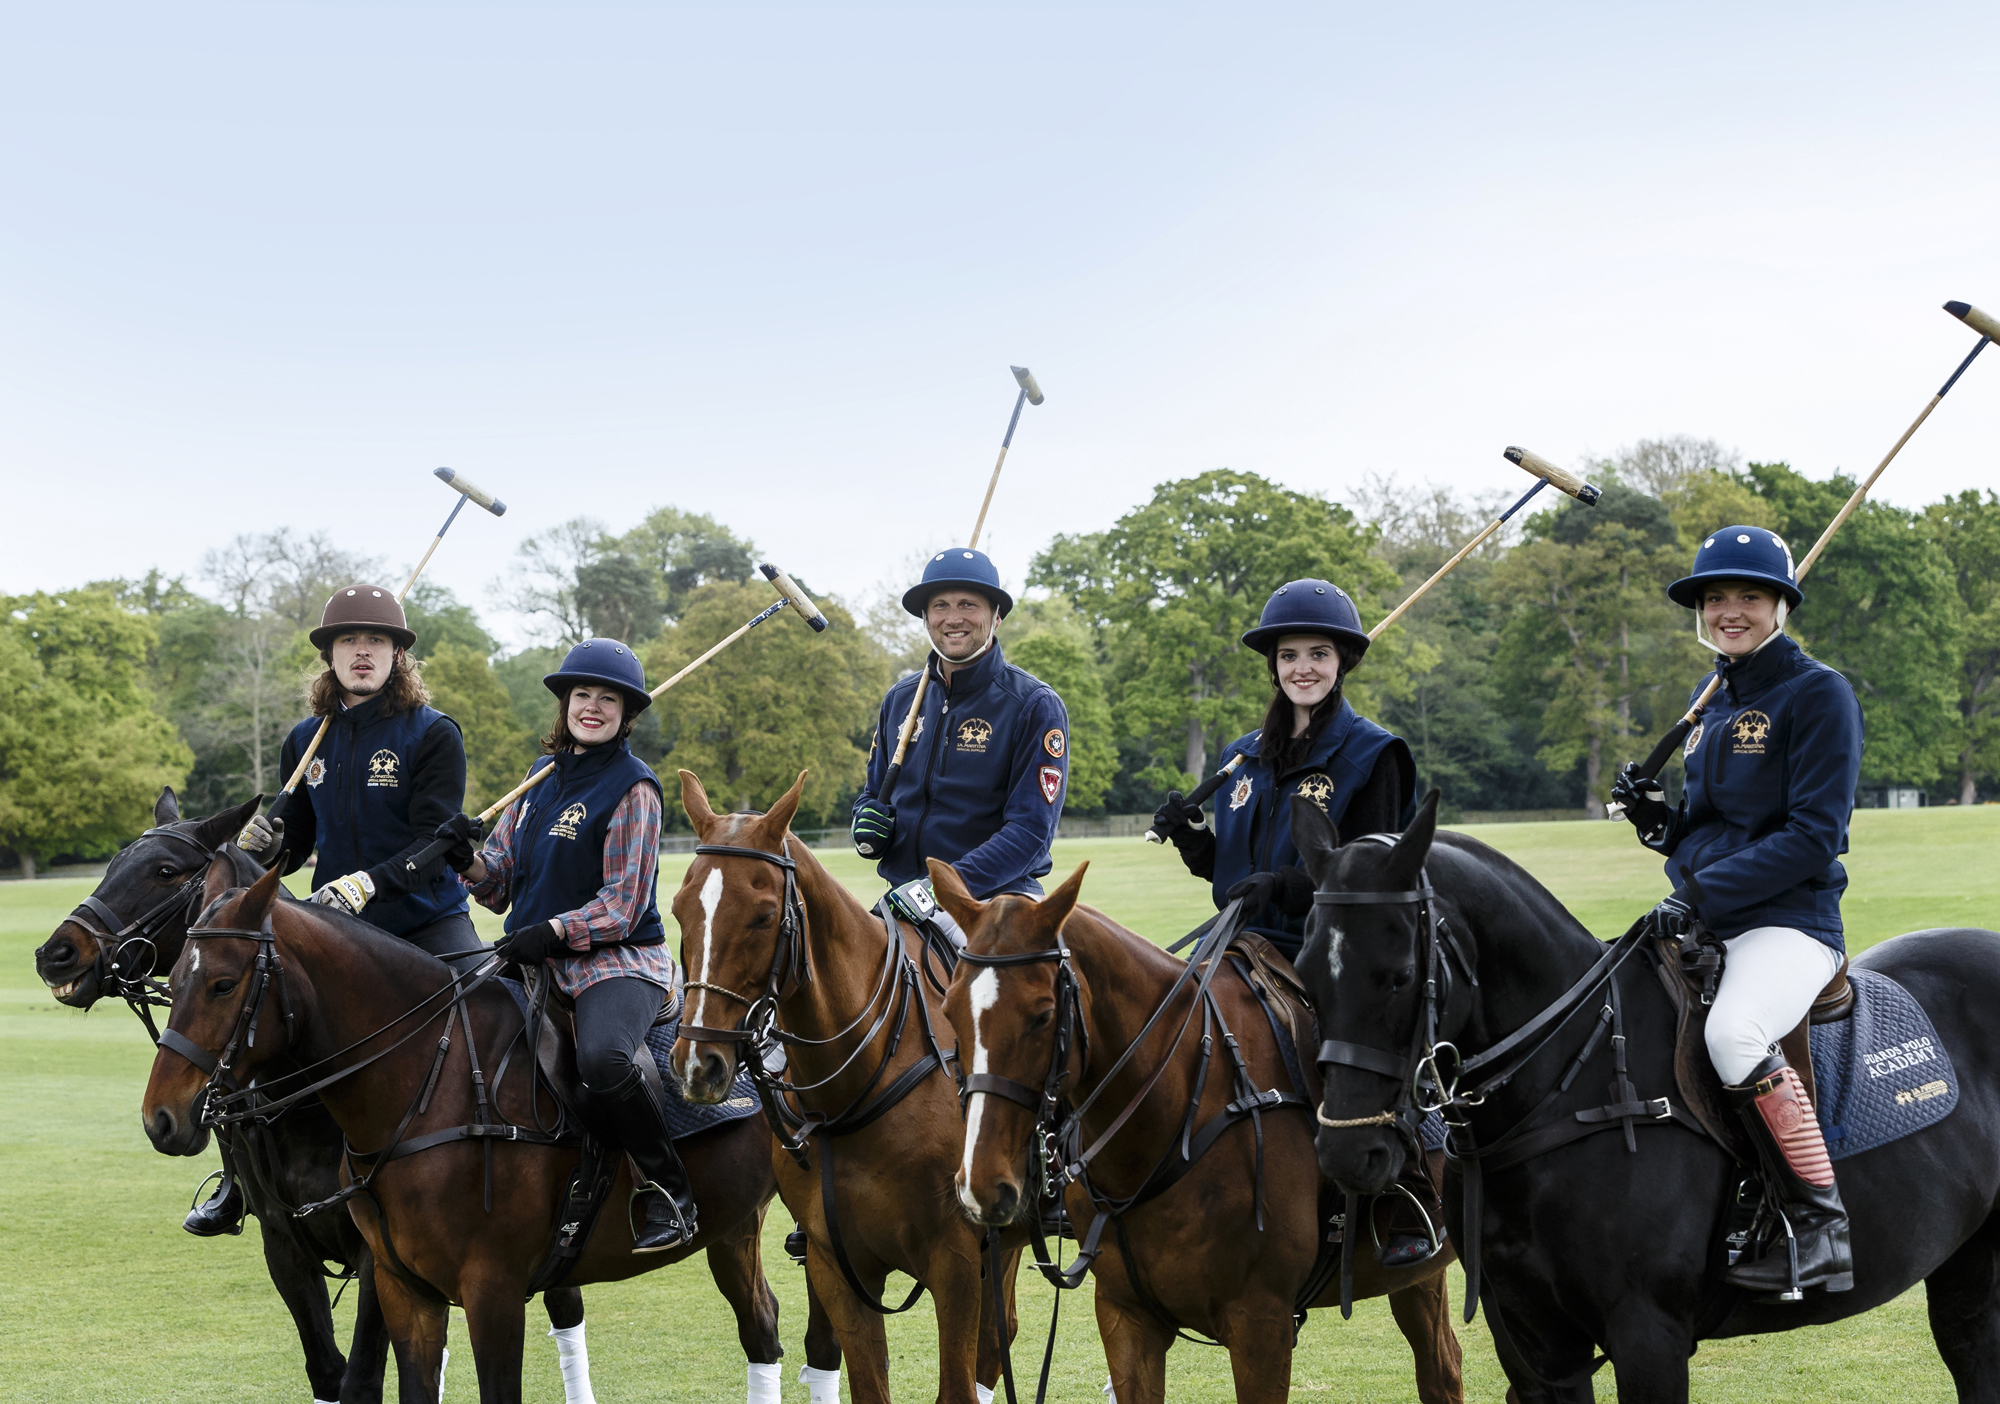 Teambuilding Guards Polo Academy masterclass at Coworth Park - credit miles willis